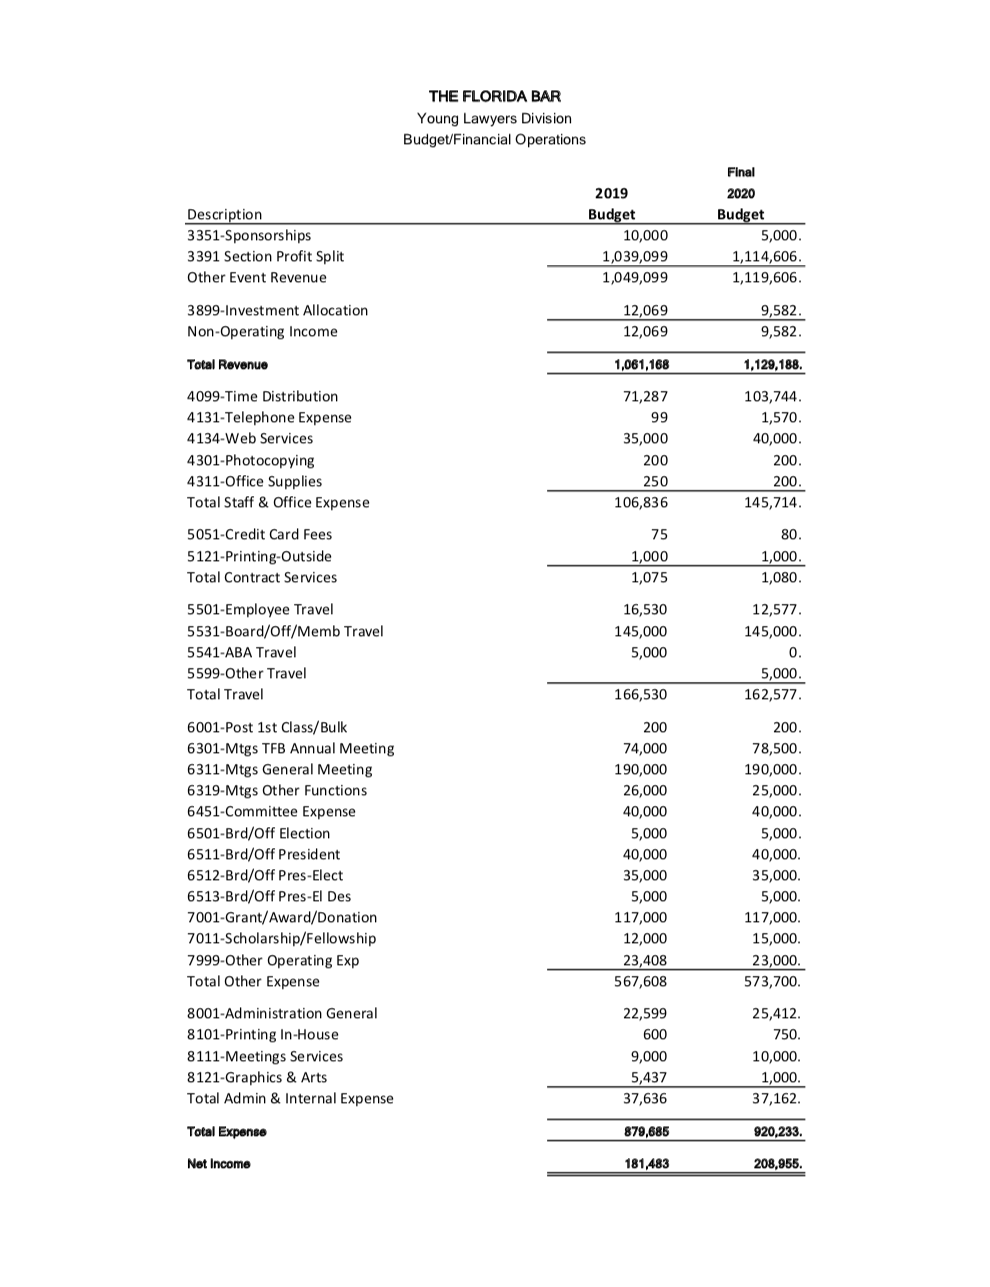 YLD FINAL Budget 19-20 for Programs Division Document PNG Image